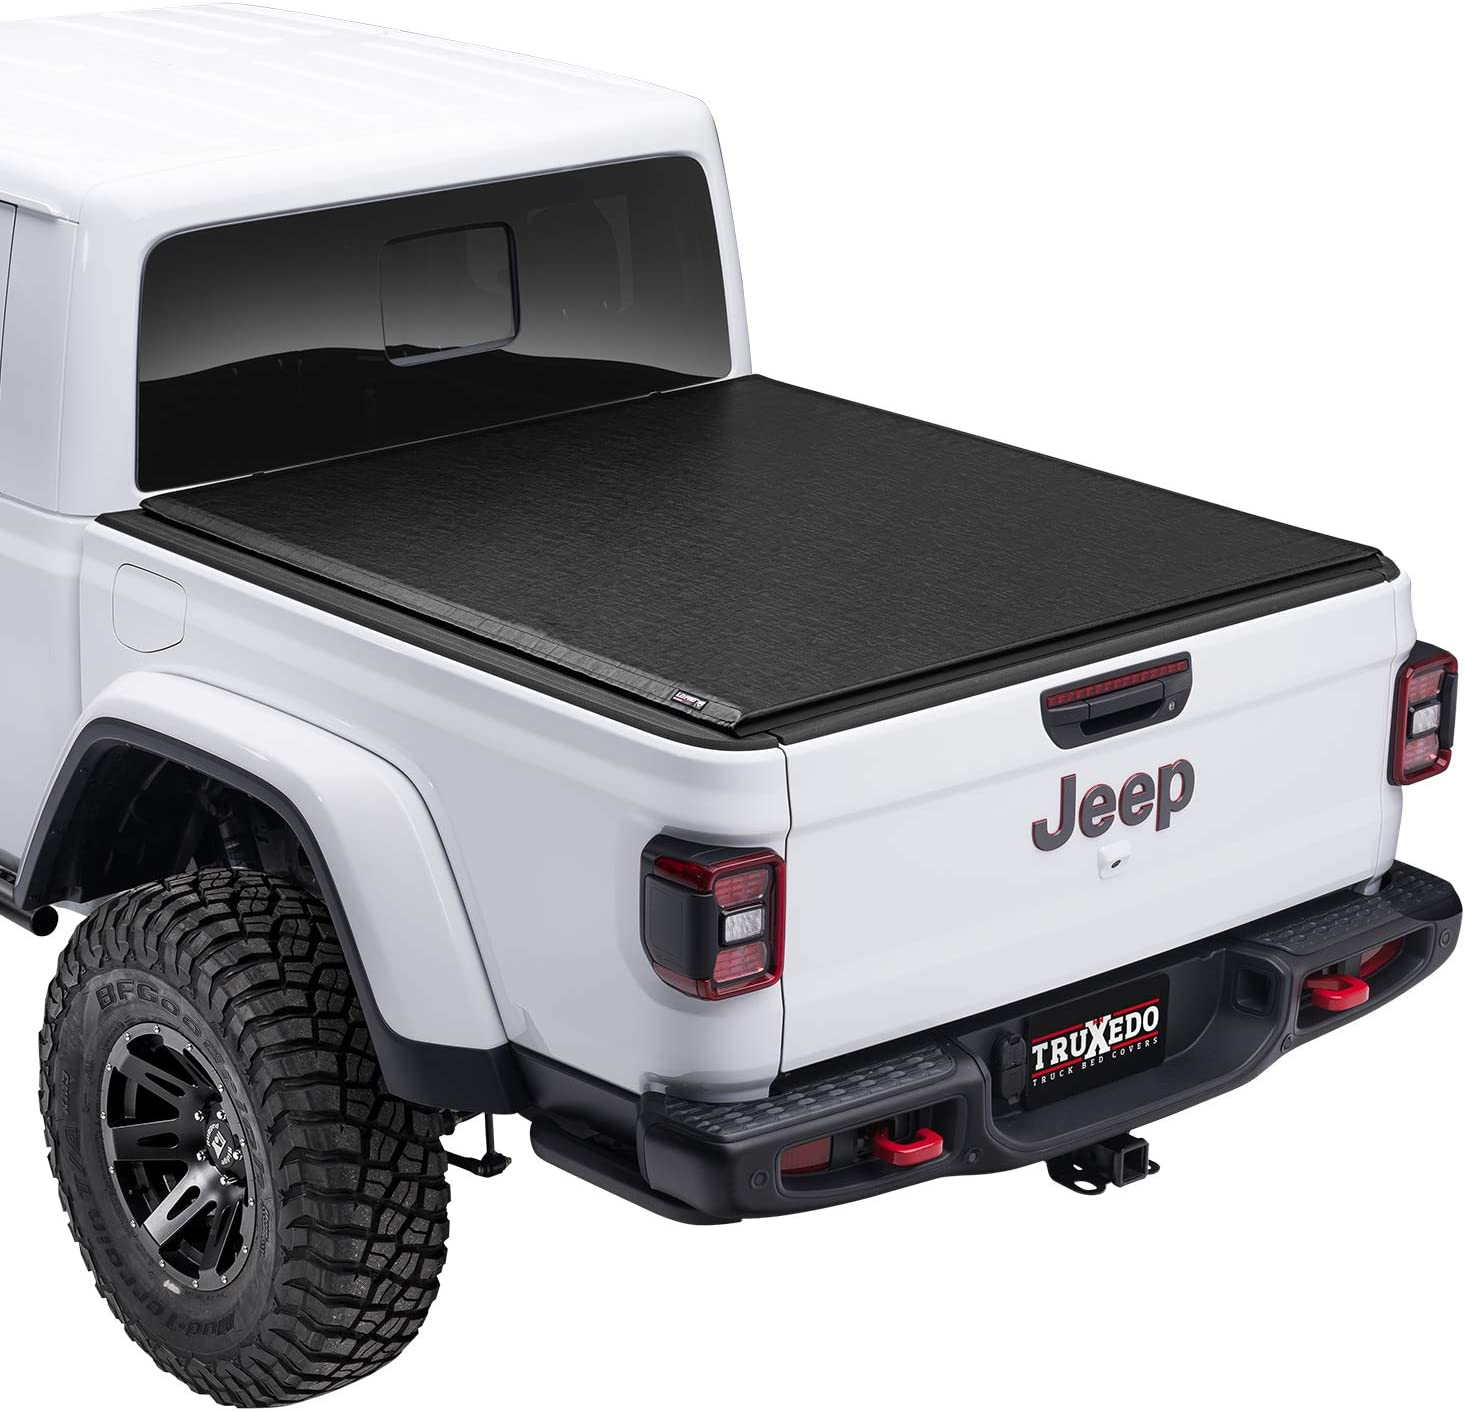 TruXedo Lo Pro Soft Roll Up Truck Bed Tonneau Cover | 523201 | Fits 2020 - 2021 Jeep Gladiator, w/ Trail Rail System 5' Bed (60